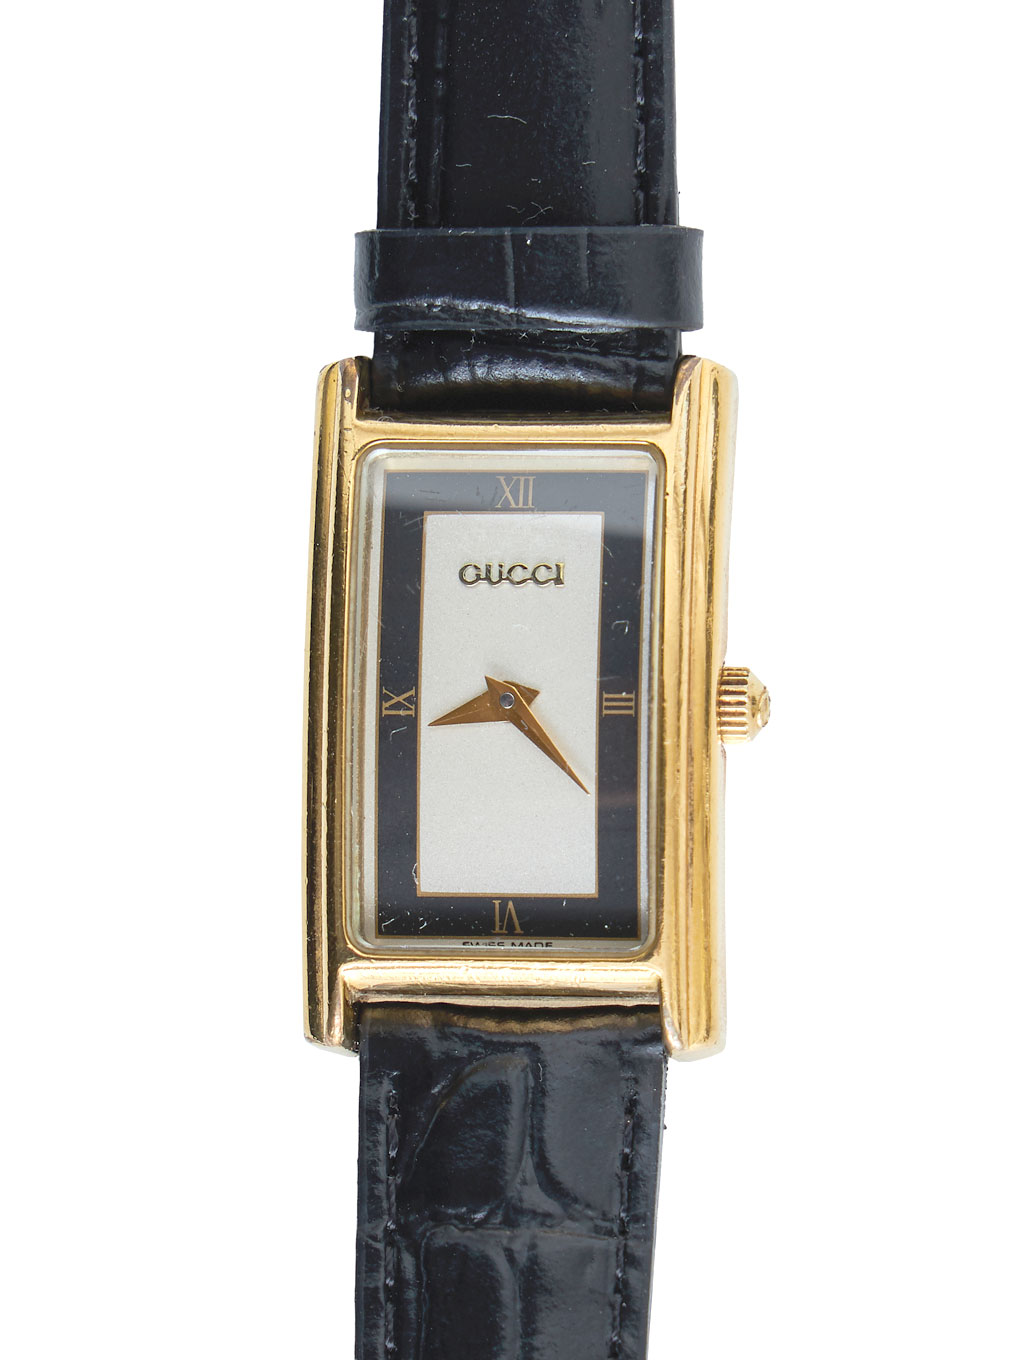 GUCCI LOGO刻印 LEATHER WATCH